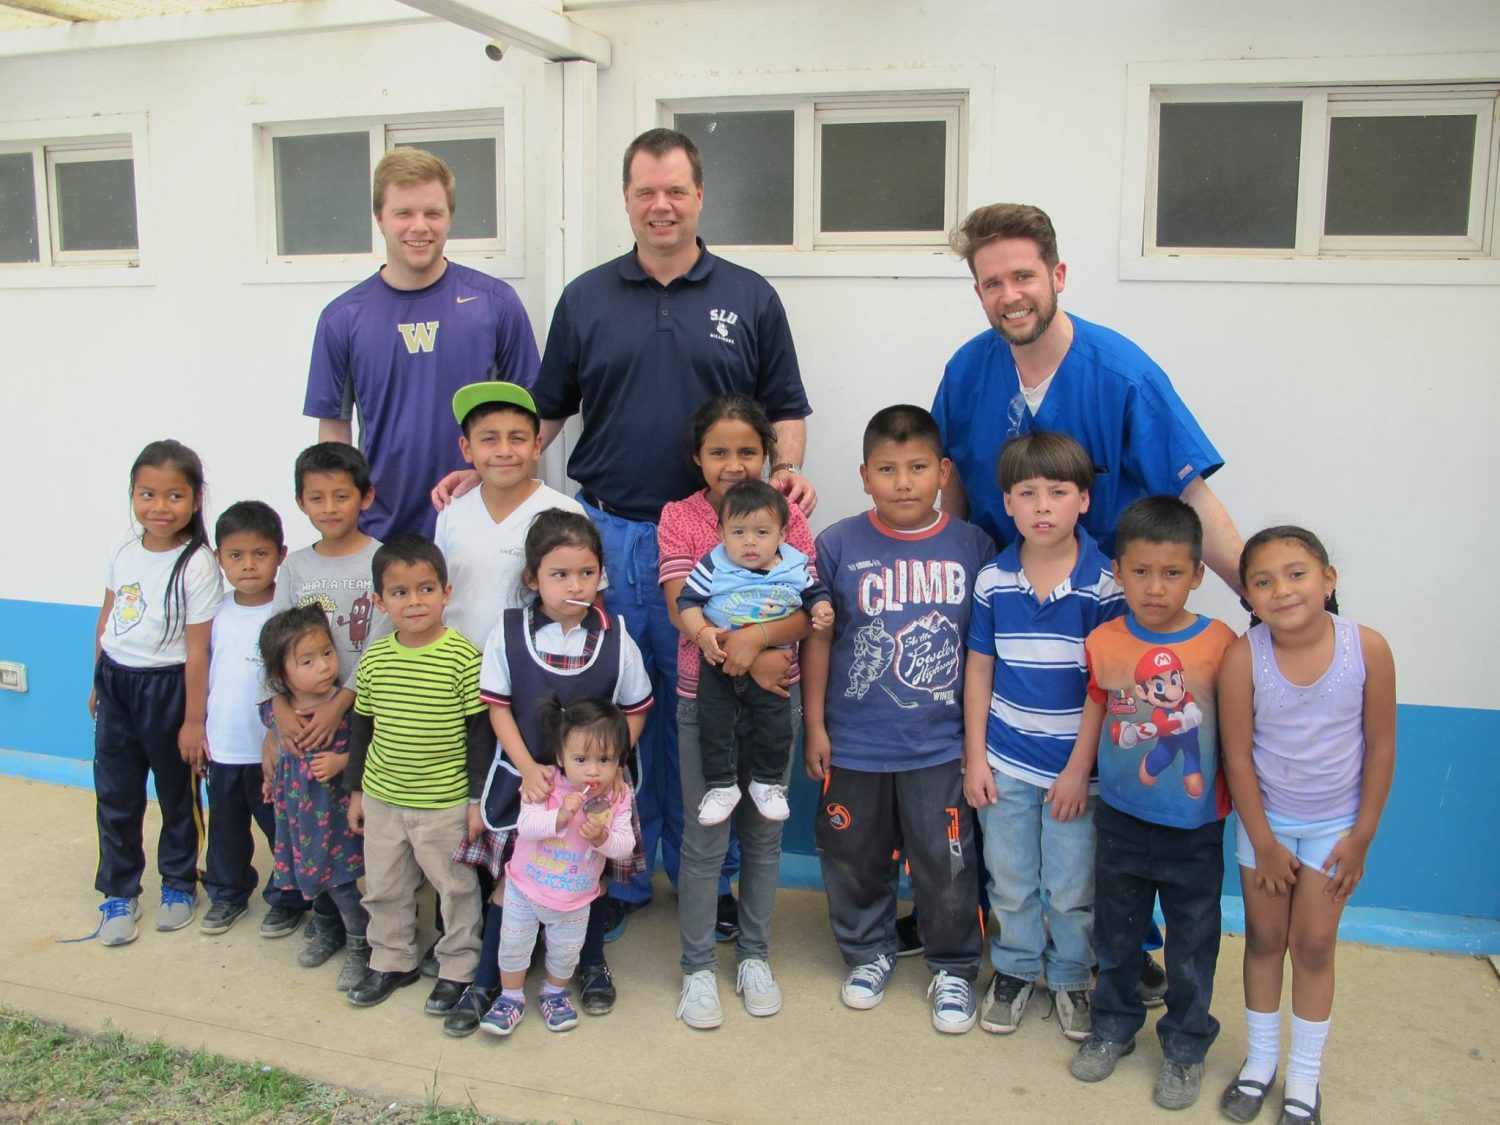 Dr. Plancich with kid patients from Open Wide Foundation